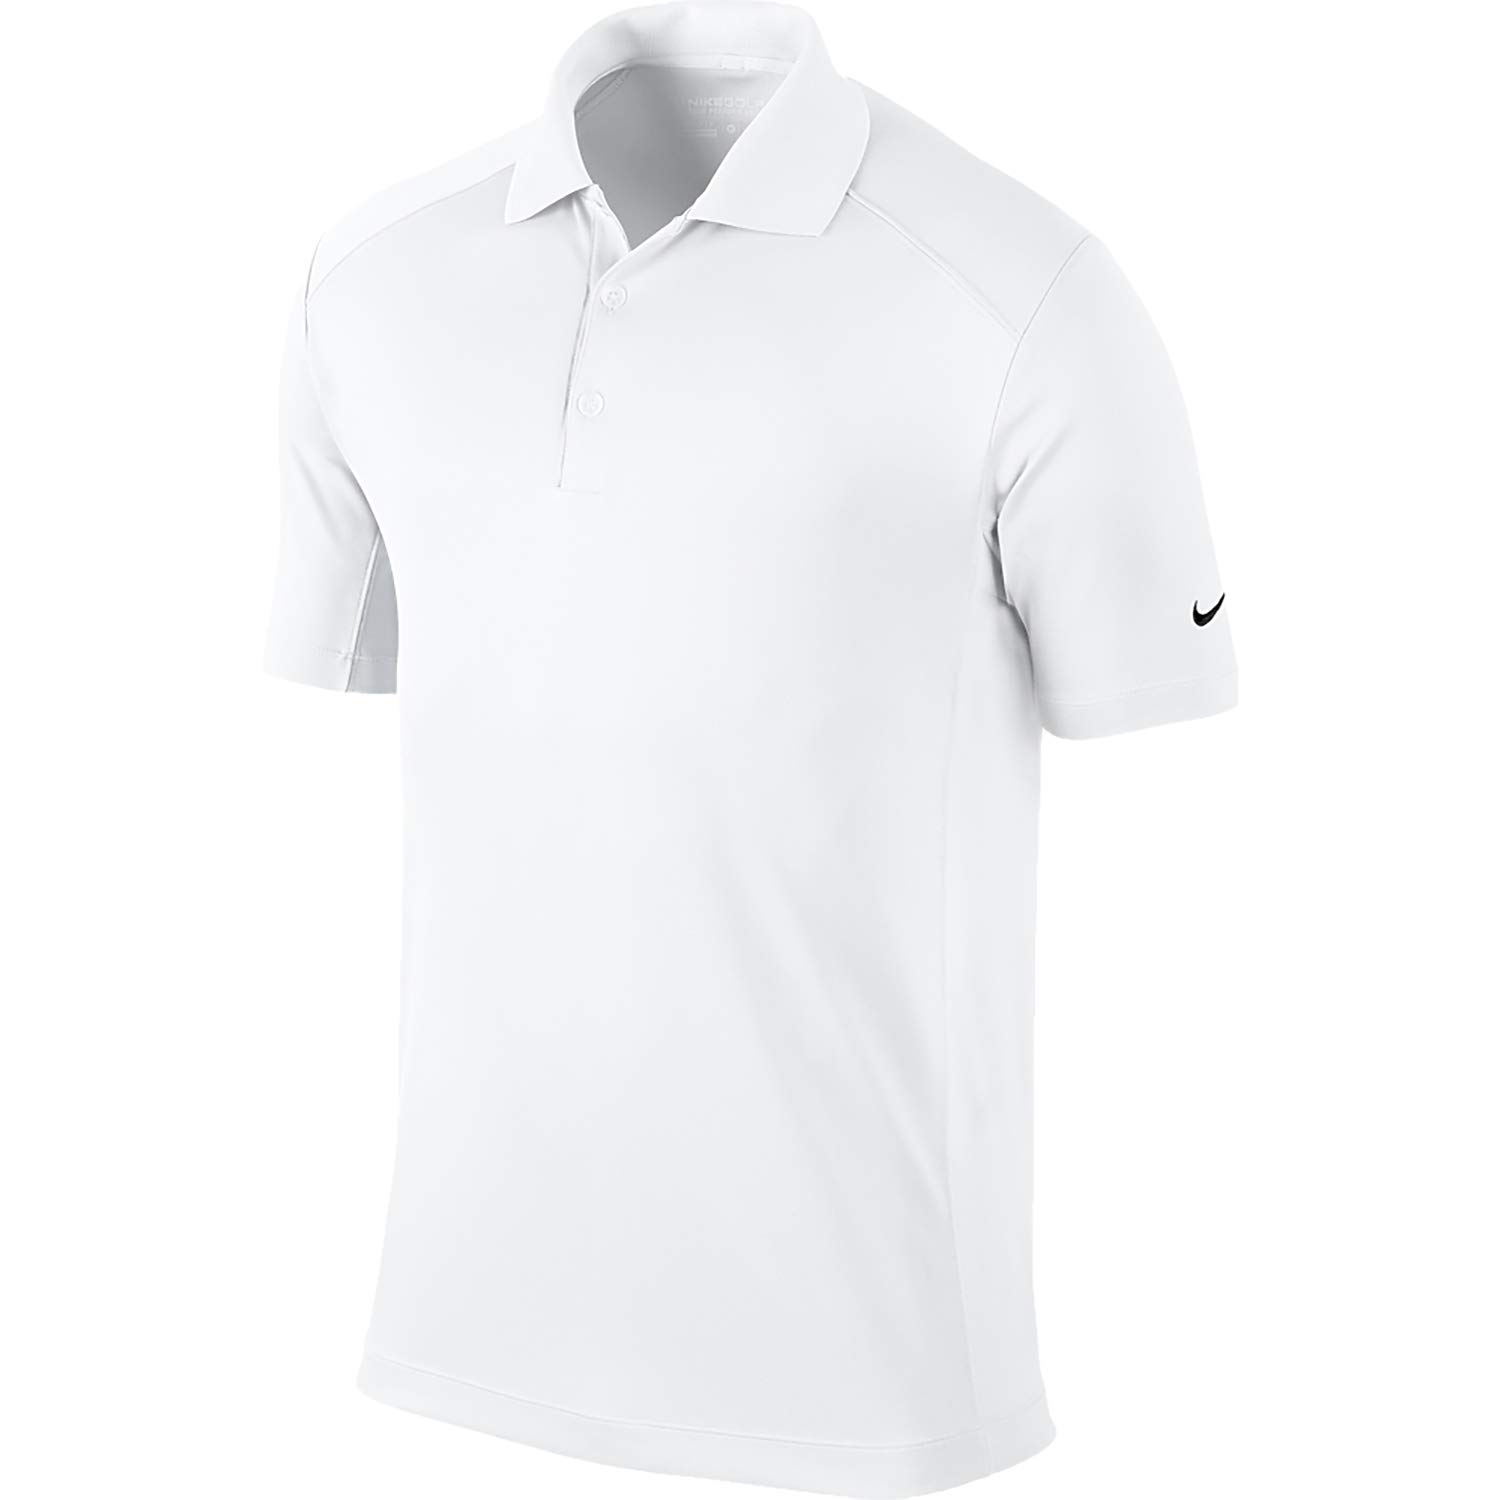 NIKE Men's Dry Victory Polo, White/Black, Large by Nike